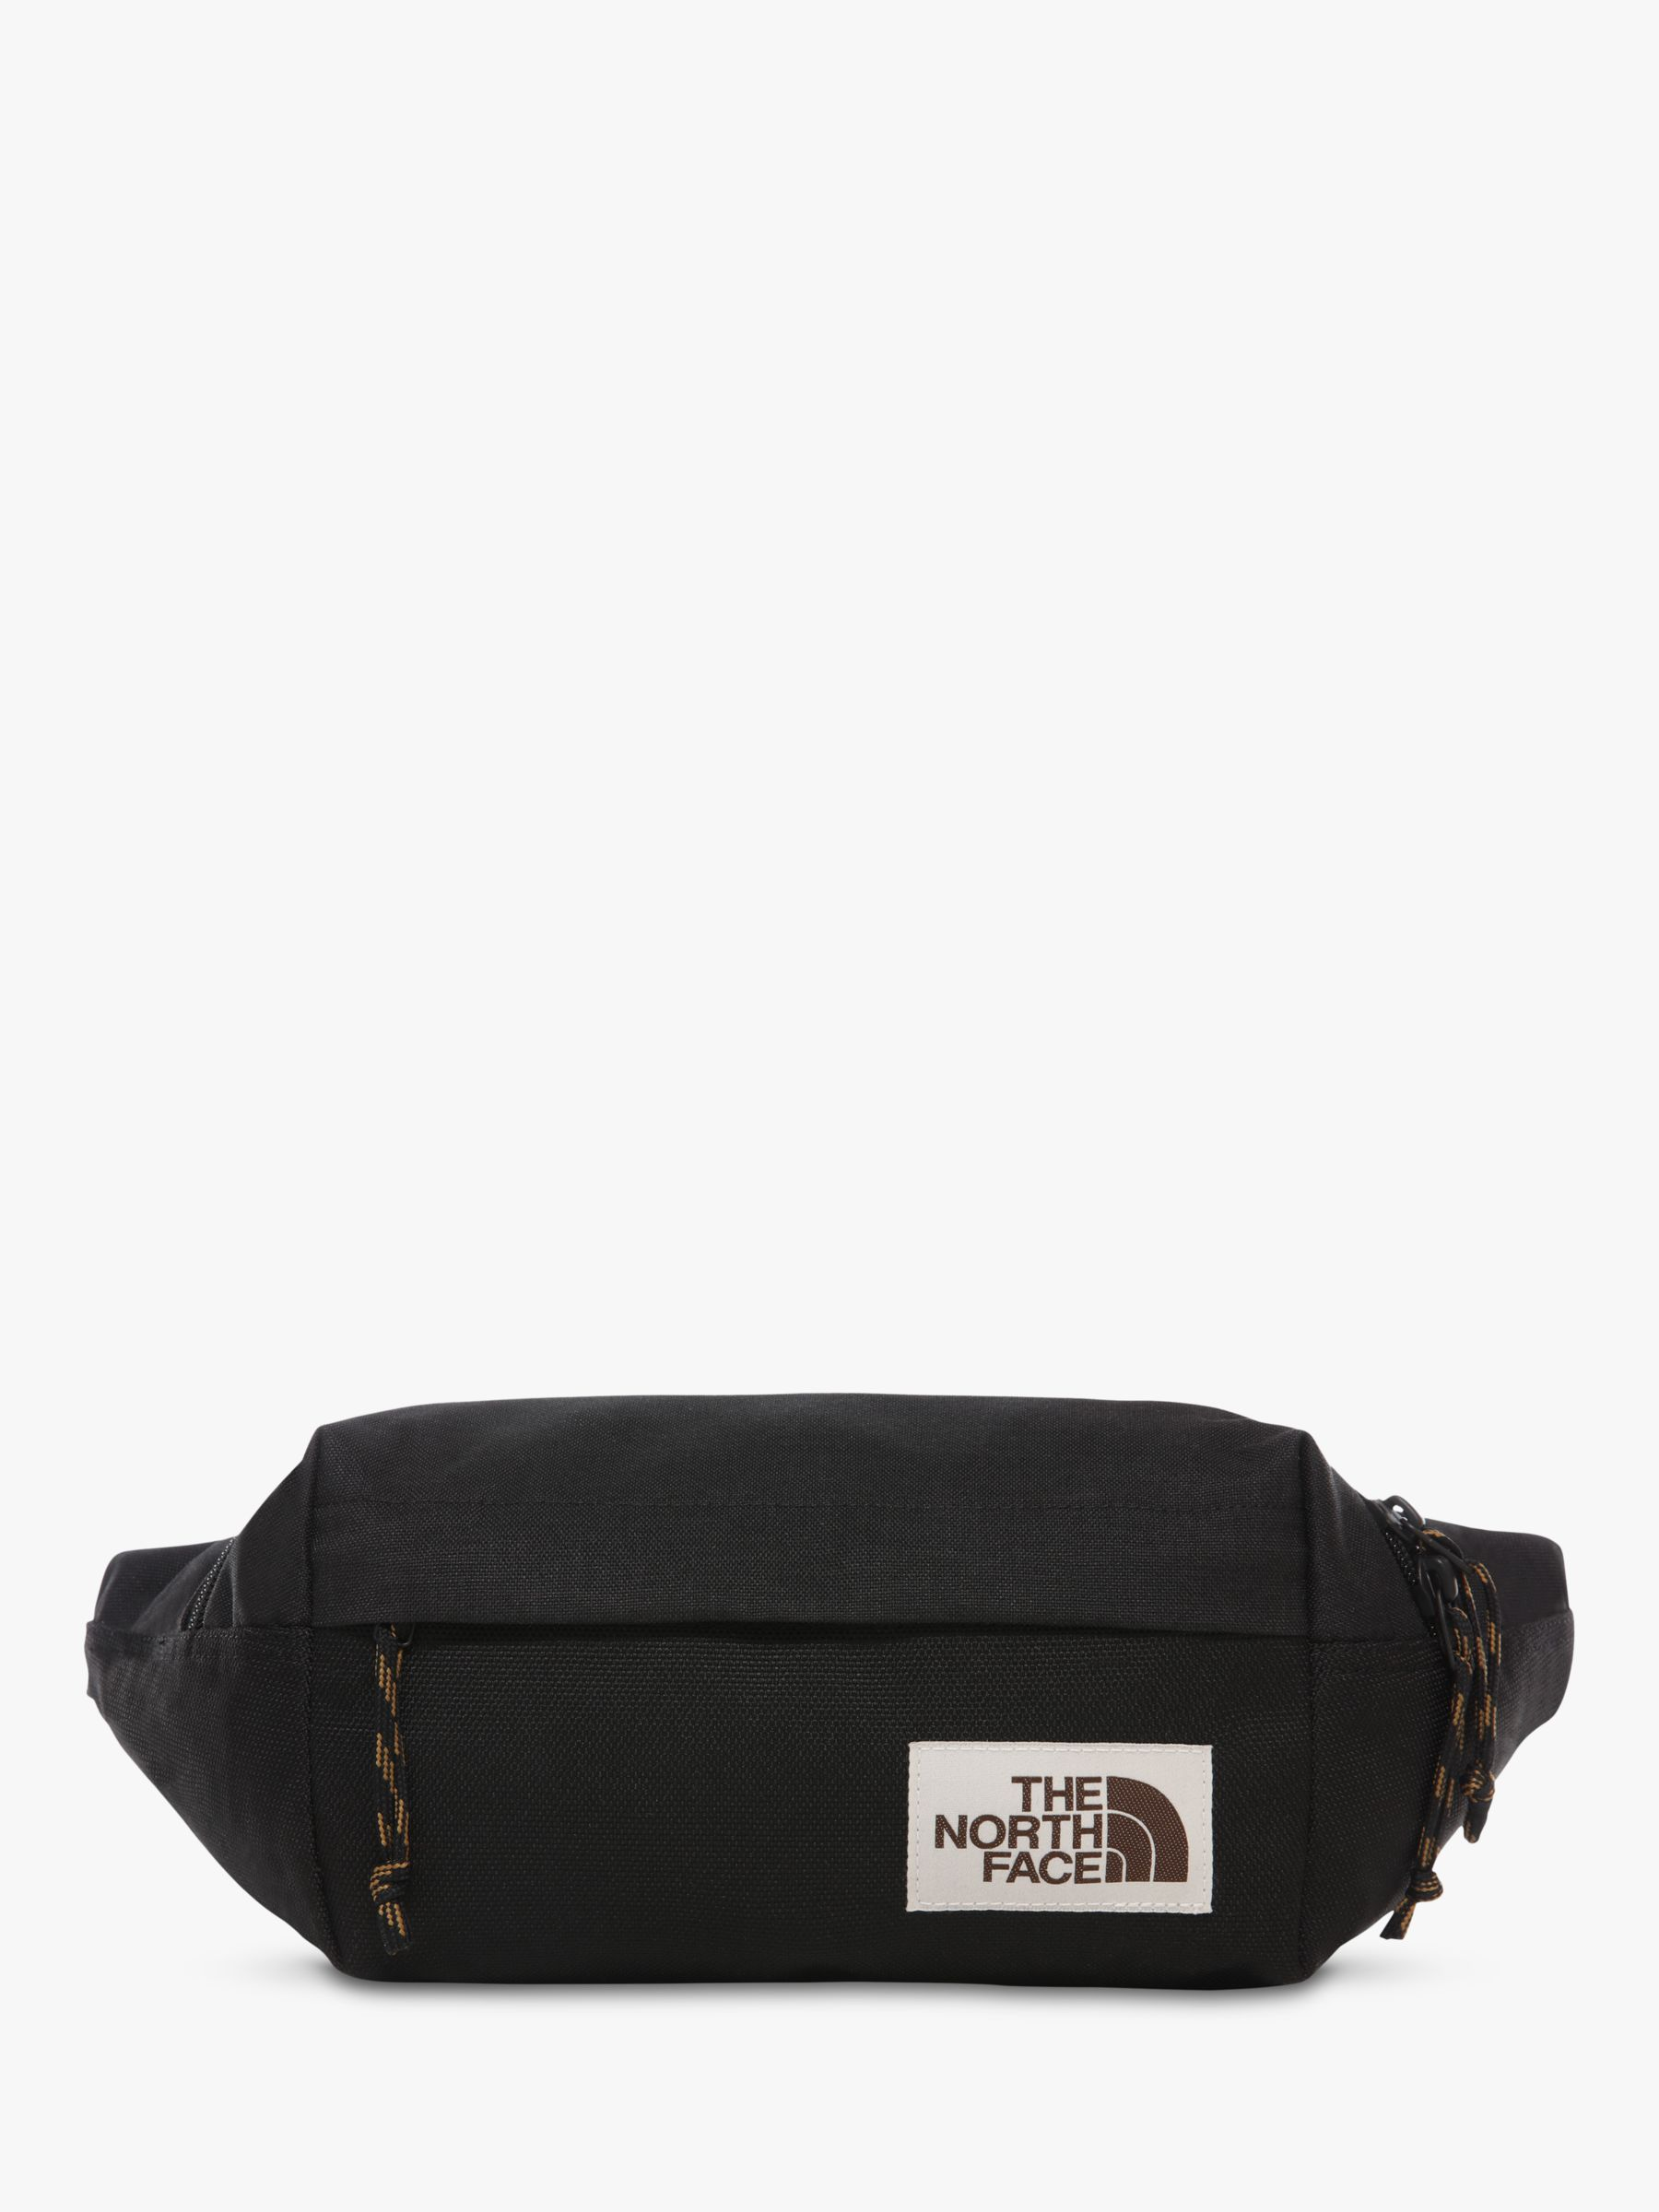 The North Face The North Face Lumbar Bum Bag, TNF Black Heather